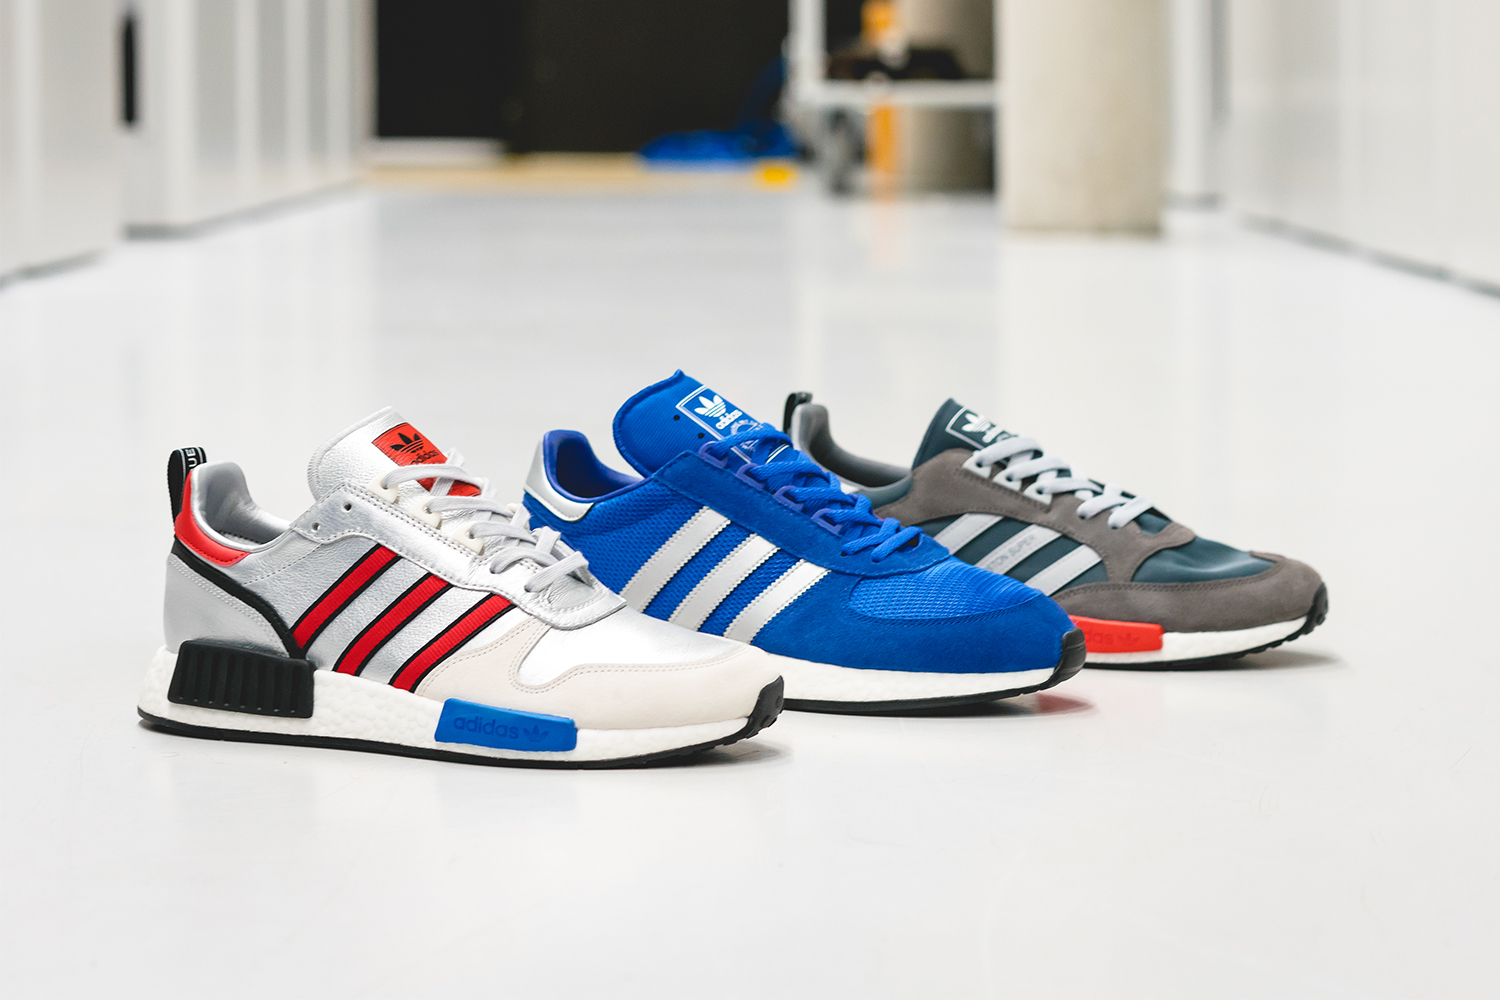 adidas Originals Never Made collection Blog Storm  Storm